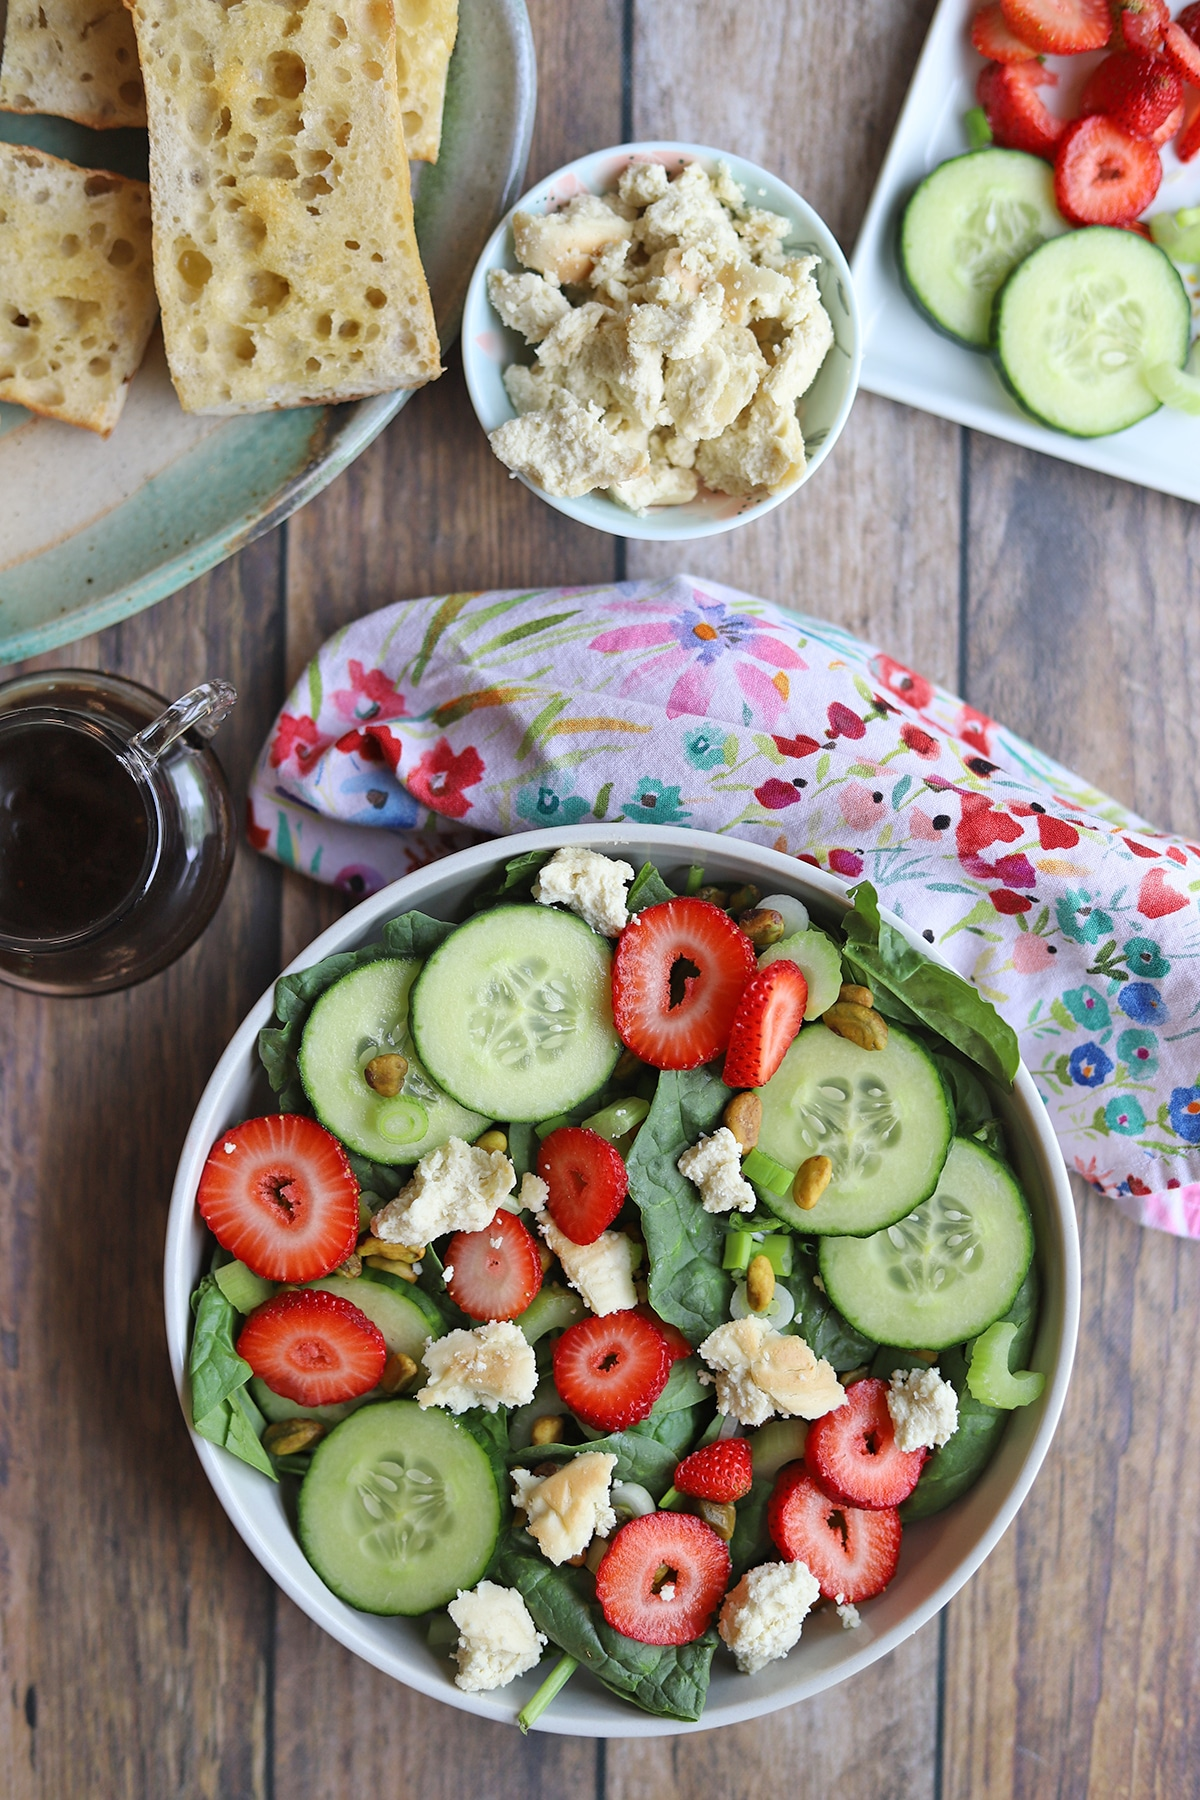 Overhead bowl of salad on table with balsamic vinaigrette.